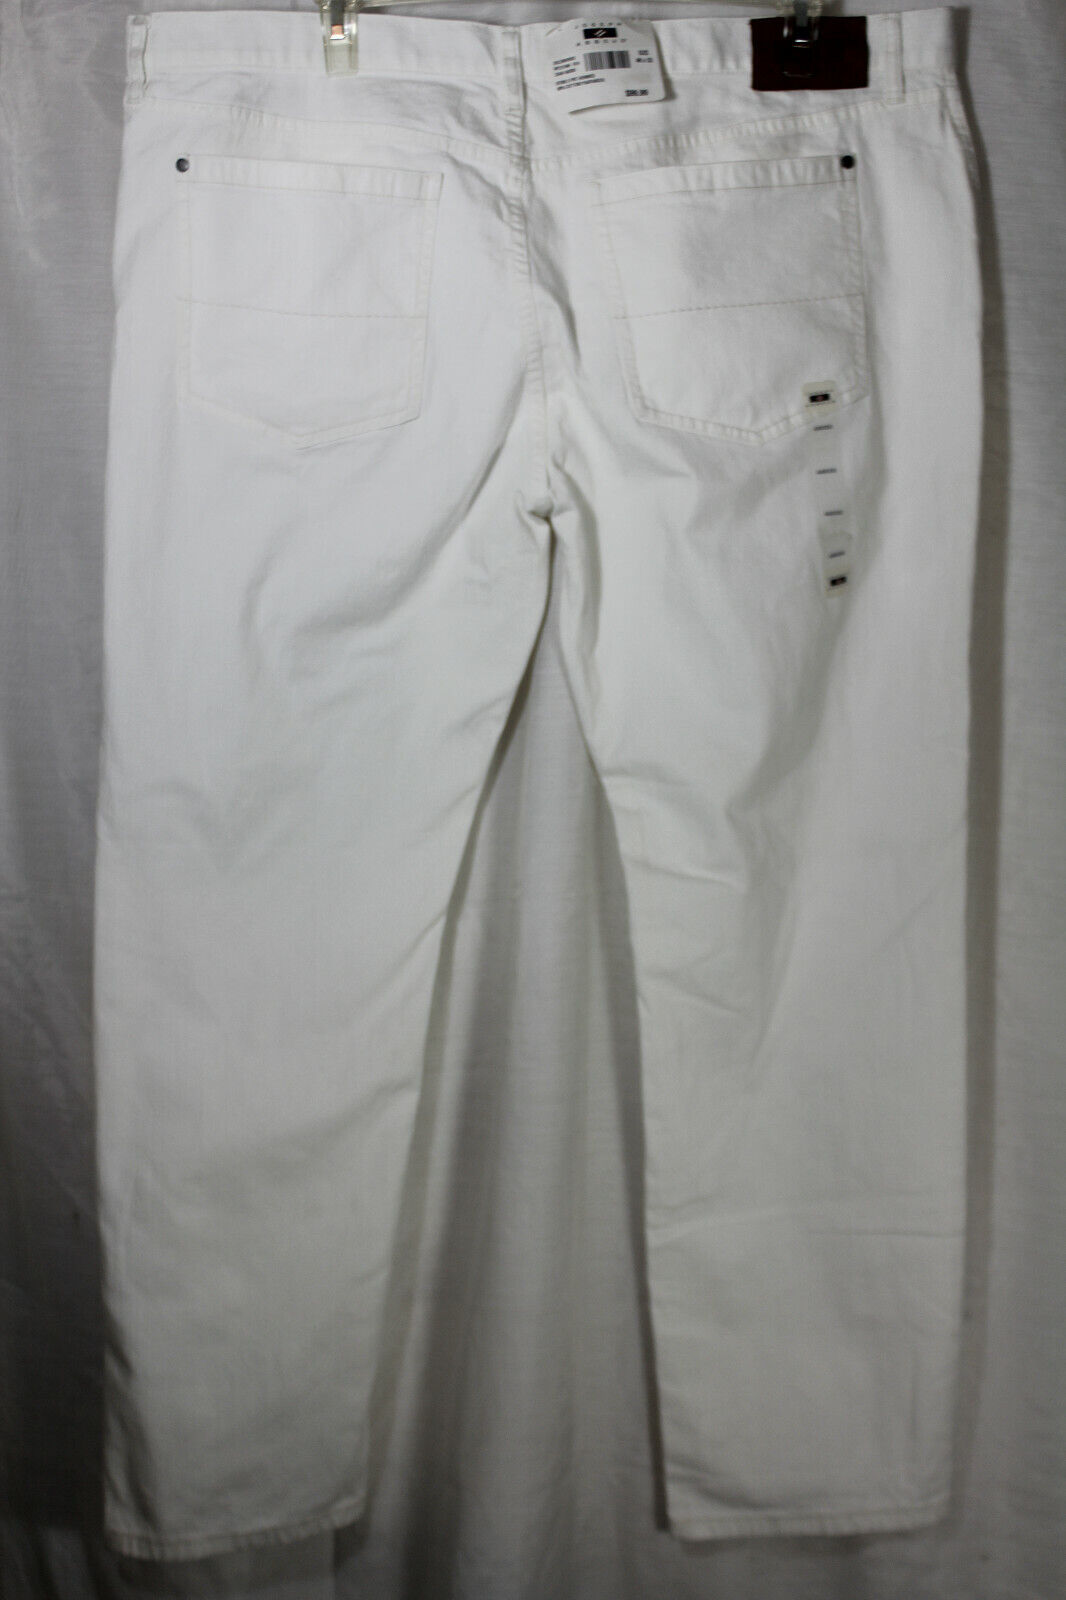 NEW Joseph Abboud Mens White Pants Size 46 X 32